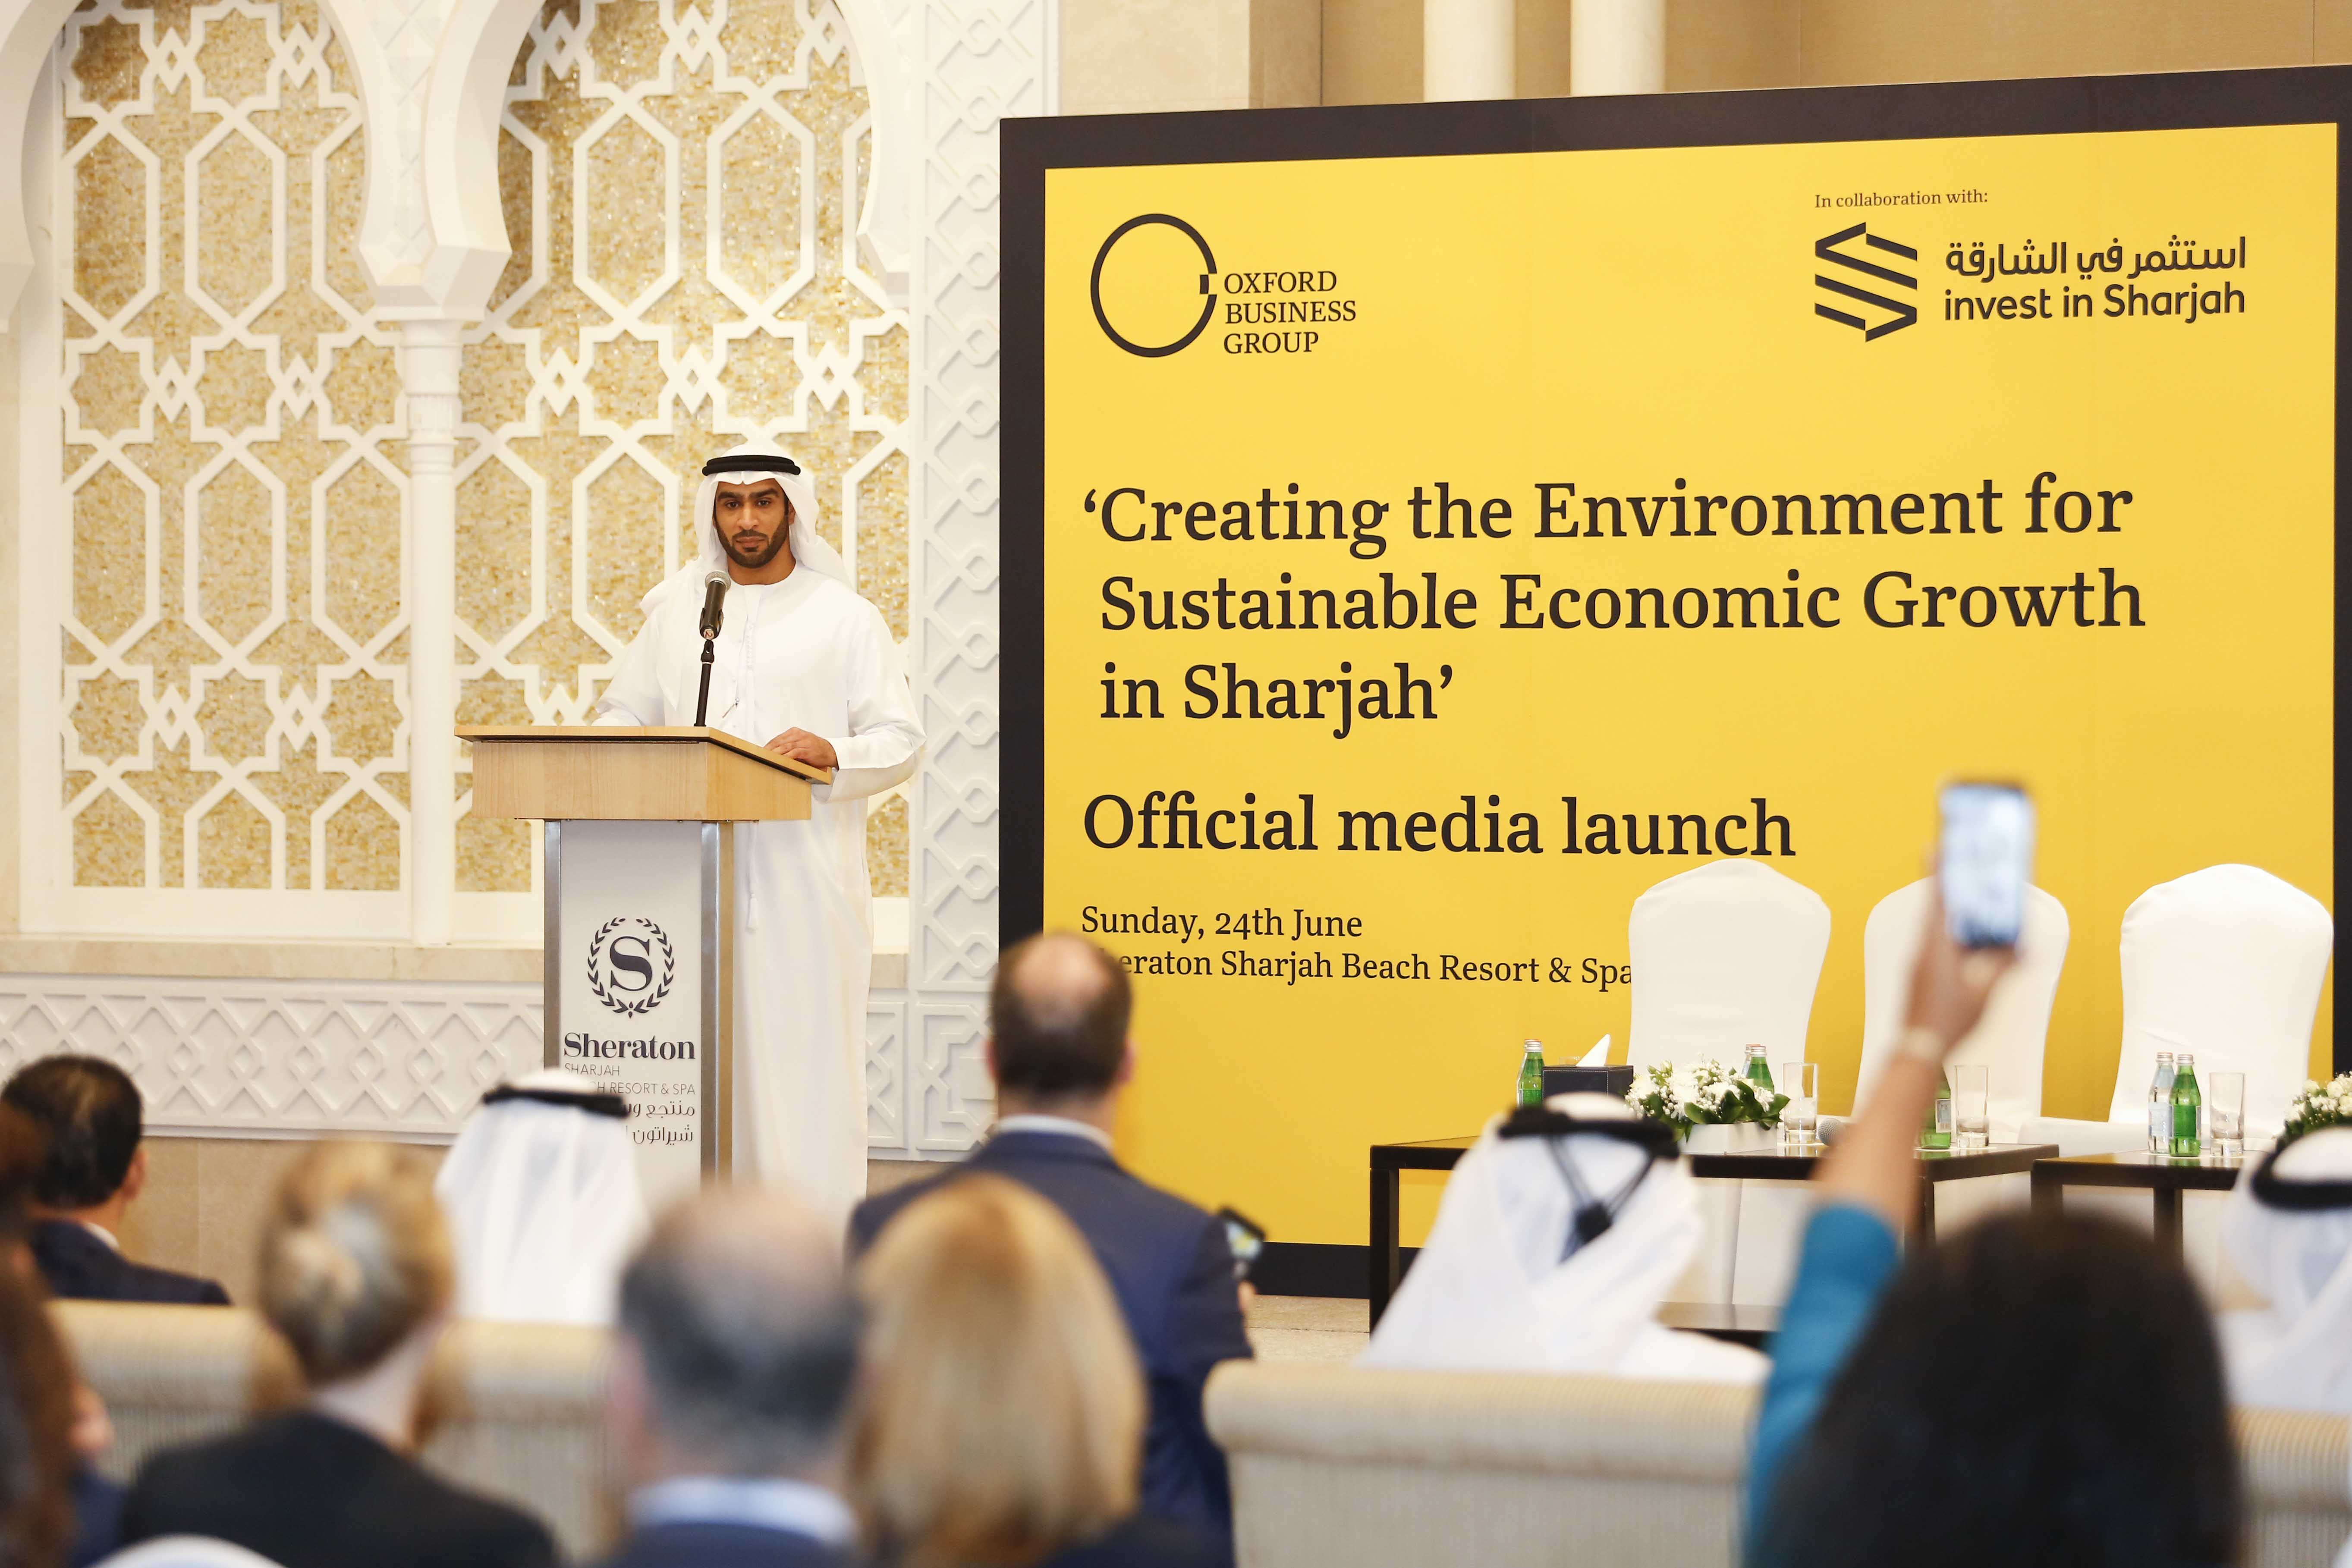 oxford business group issues report on sharjah's economic diversification1